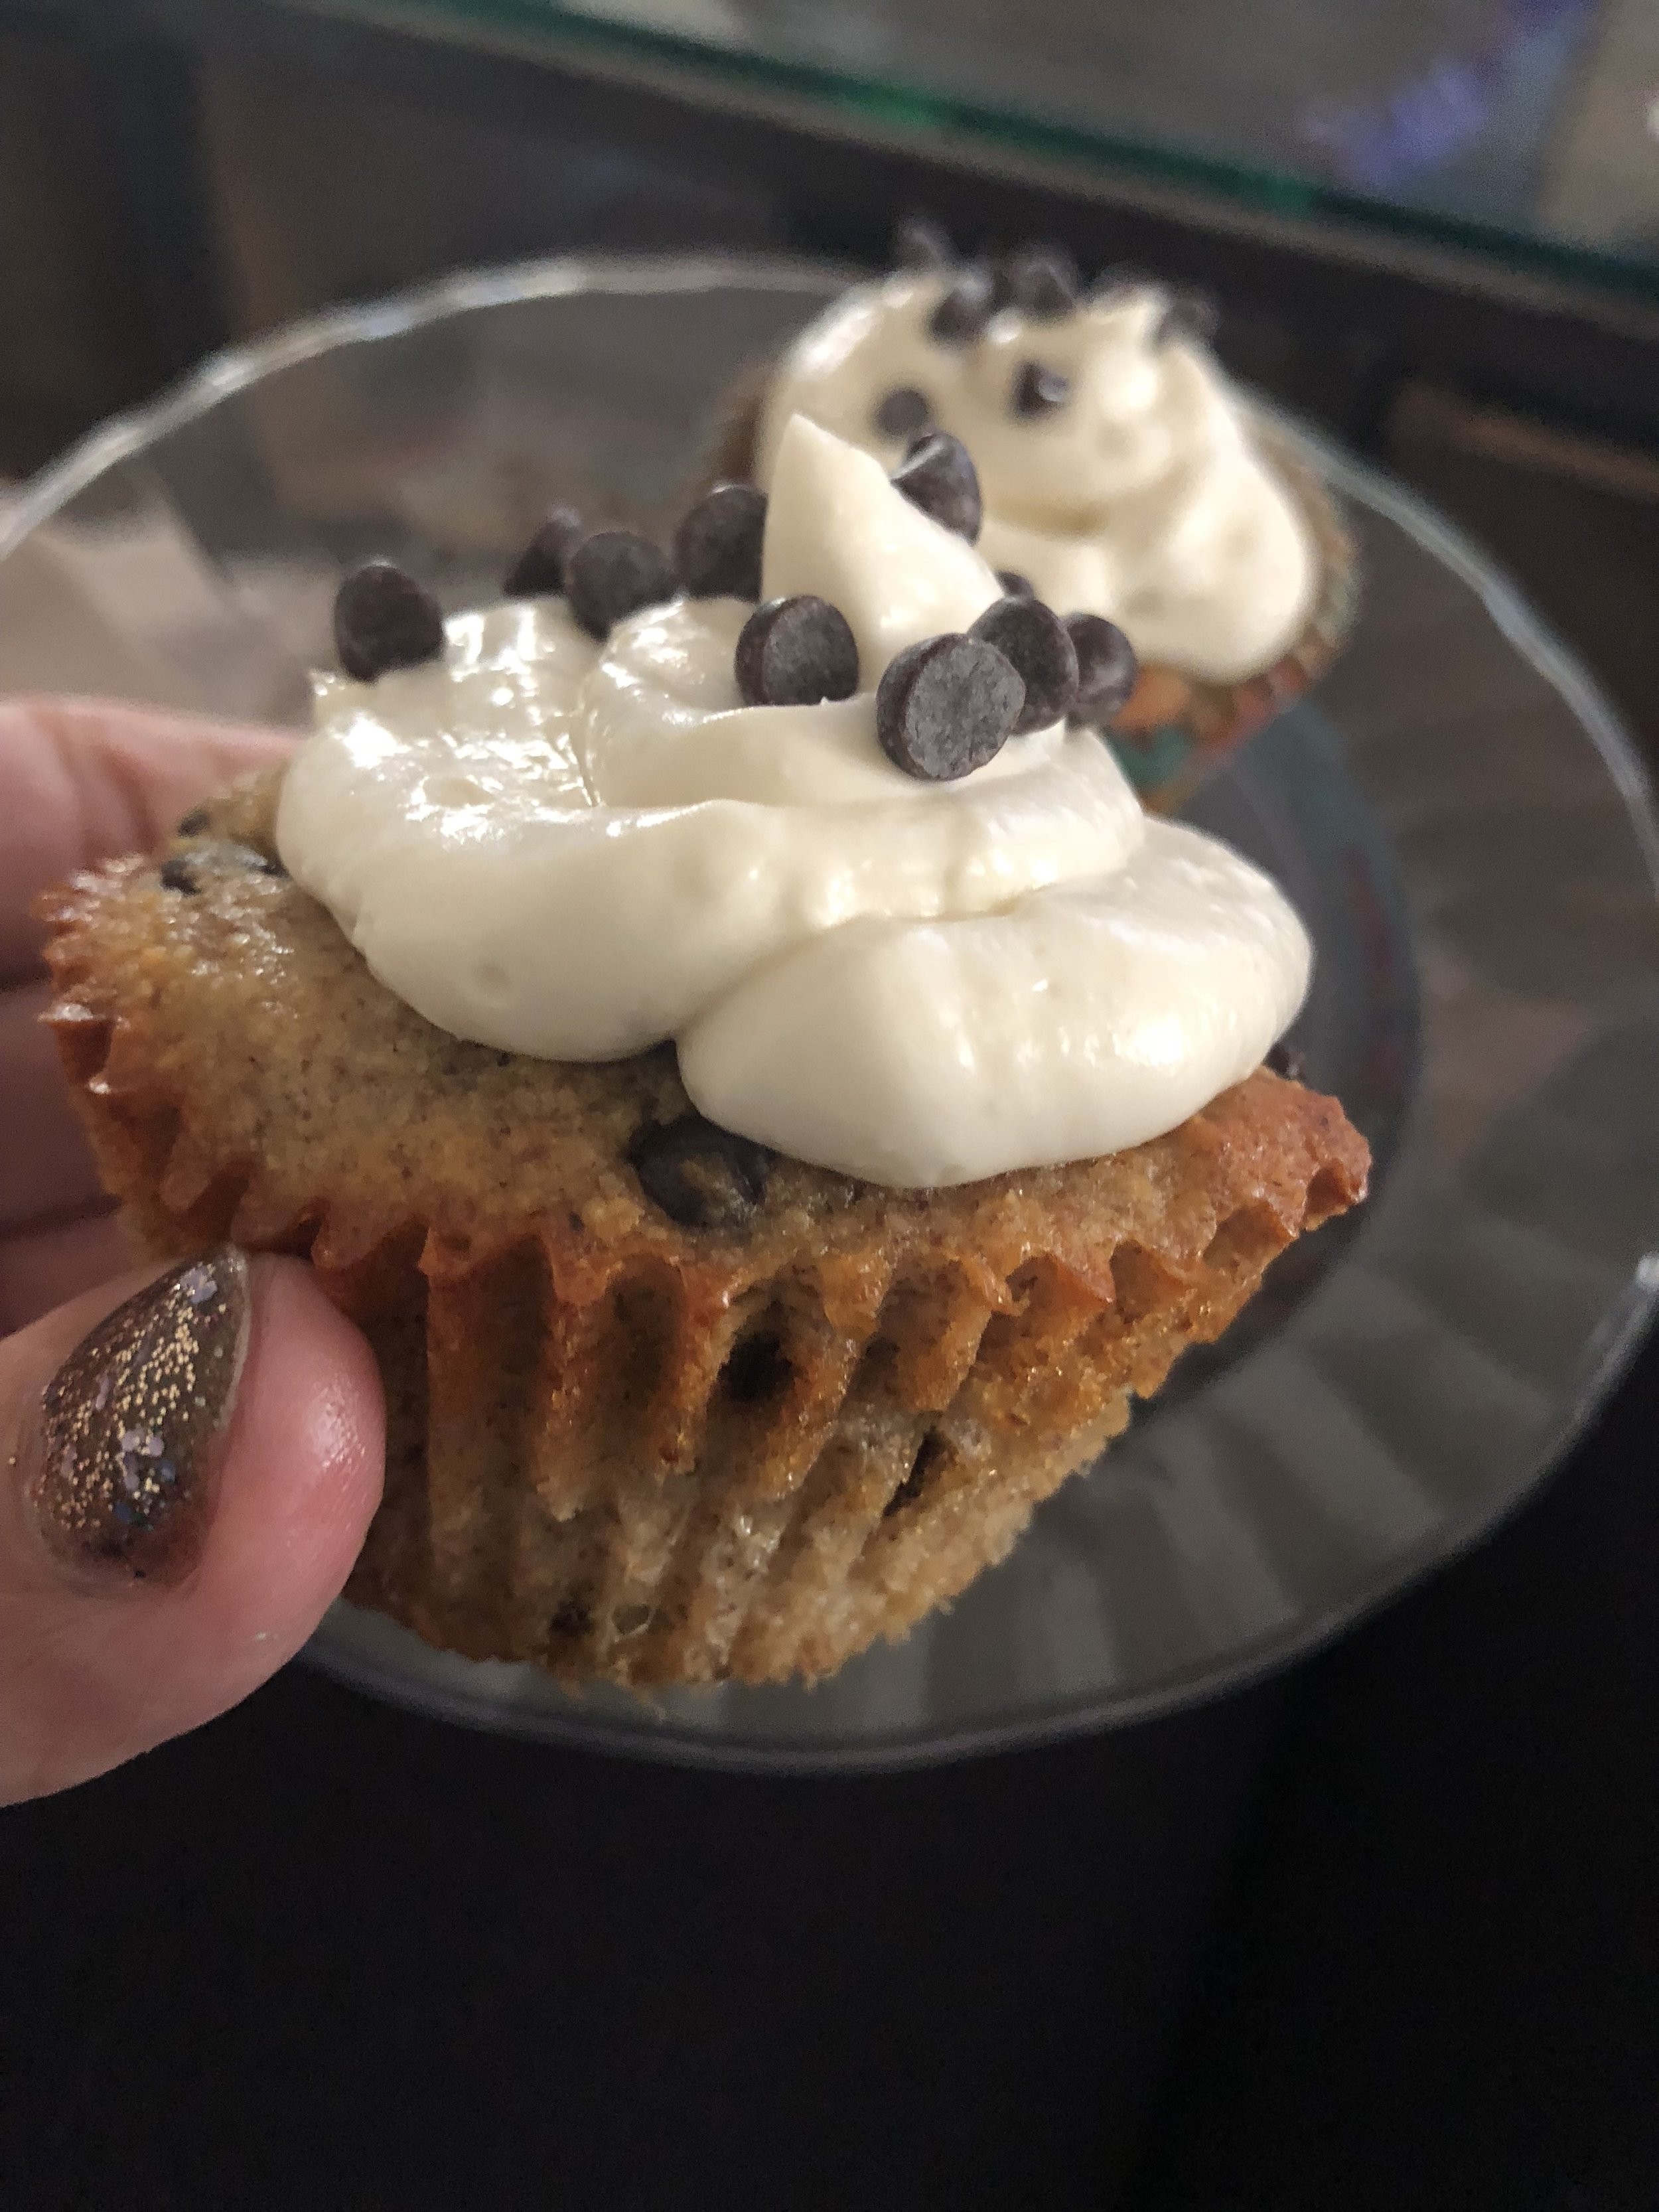 choc chip cupcakes keto in the city know foods